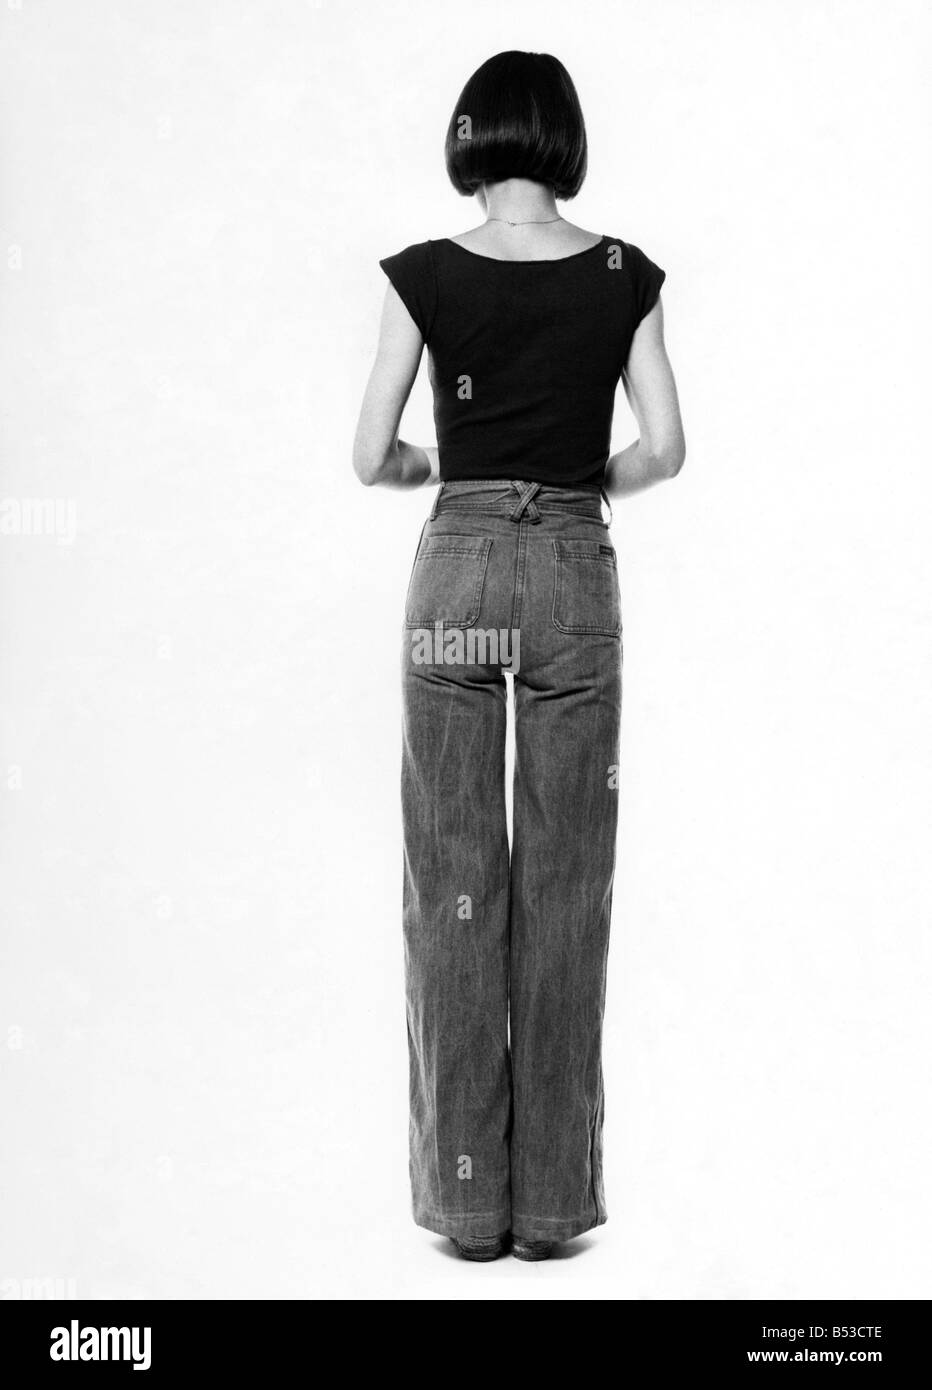 Fashion - 1970s. Back of woman.  Jeans and t-shirt. October 1975 P017333 - Stock Image